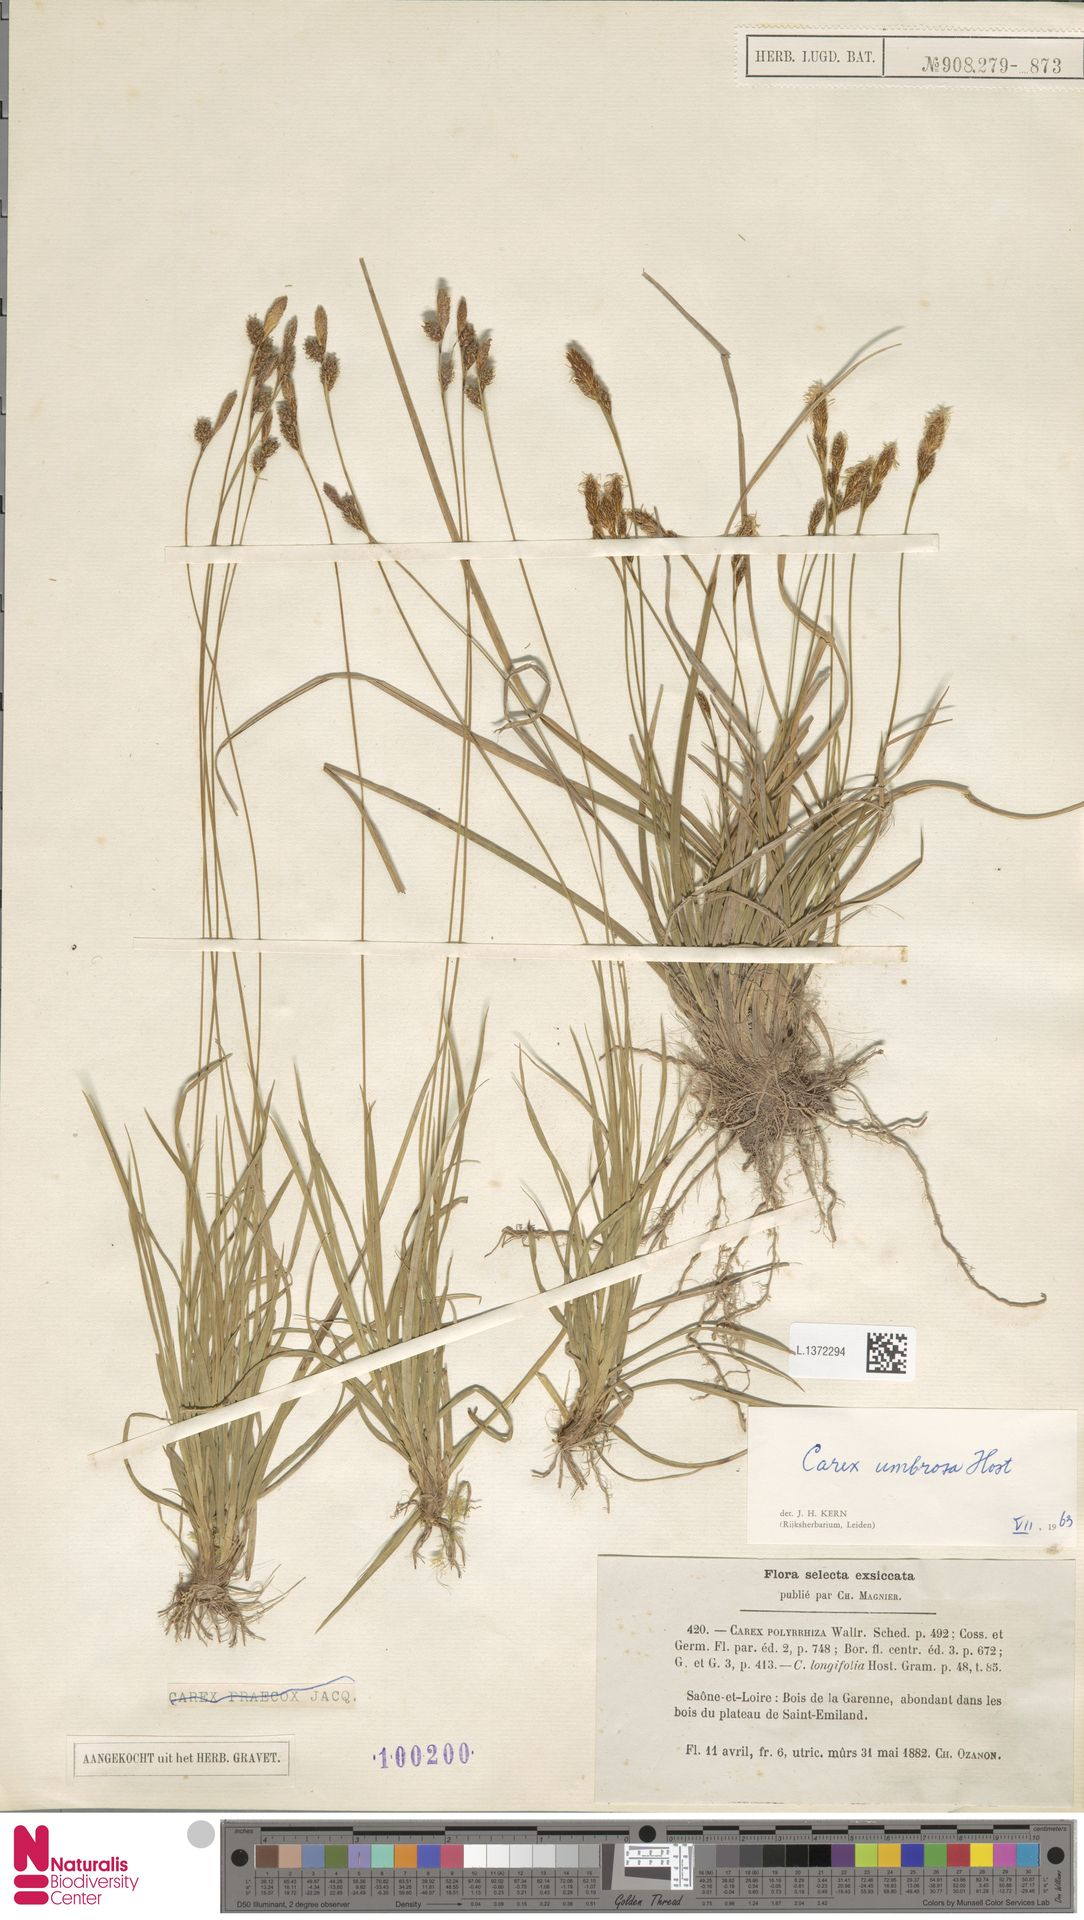 L.1372294 | Carex umbrosa Host